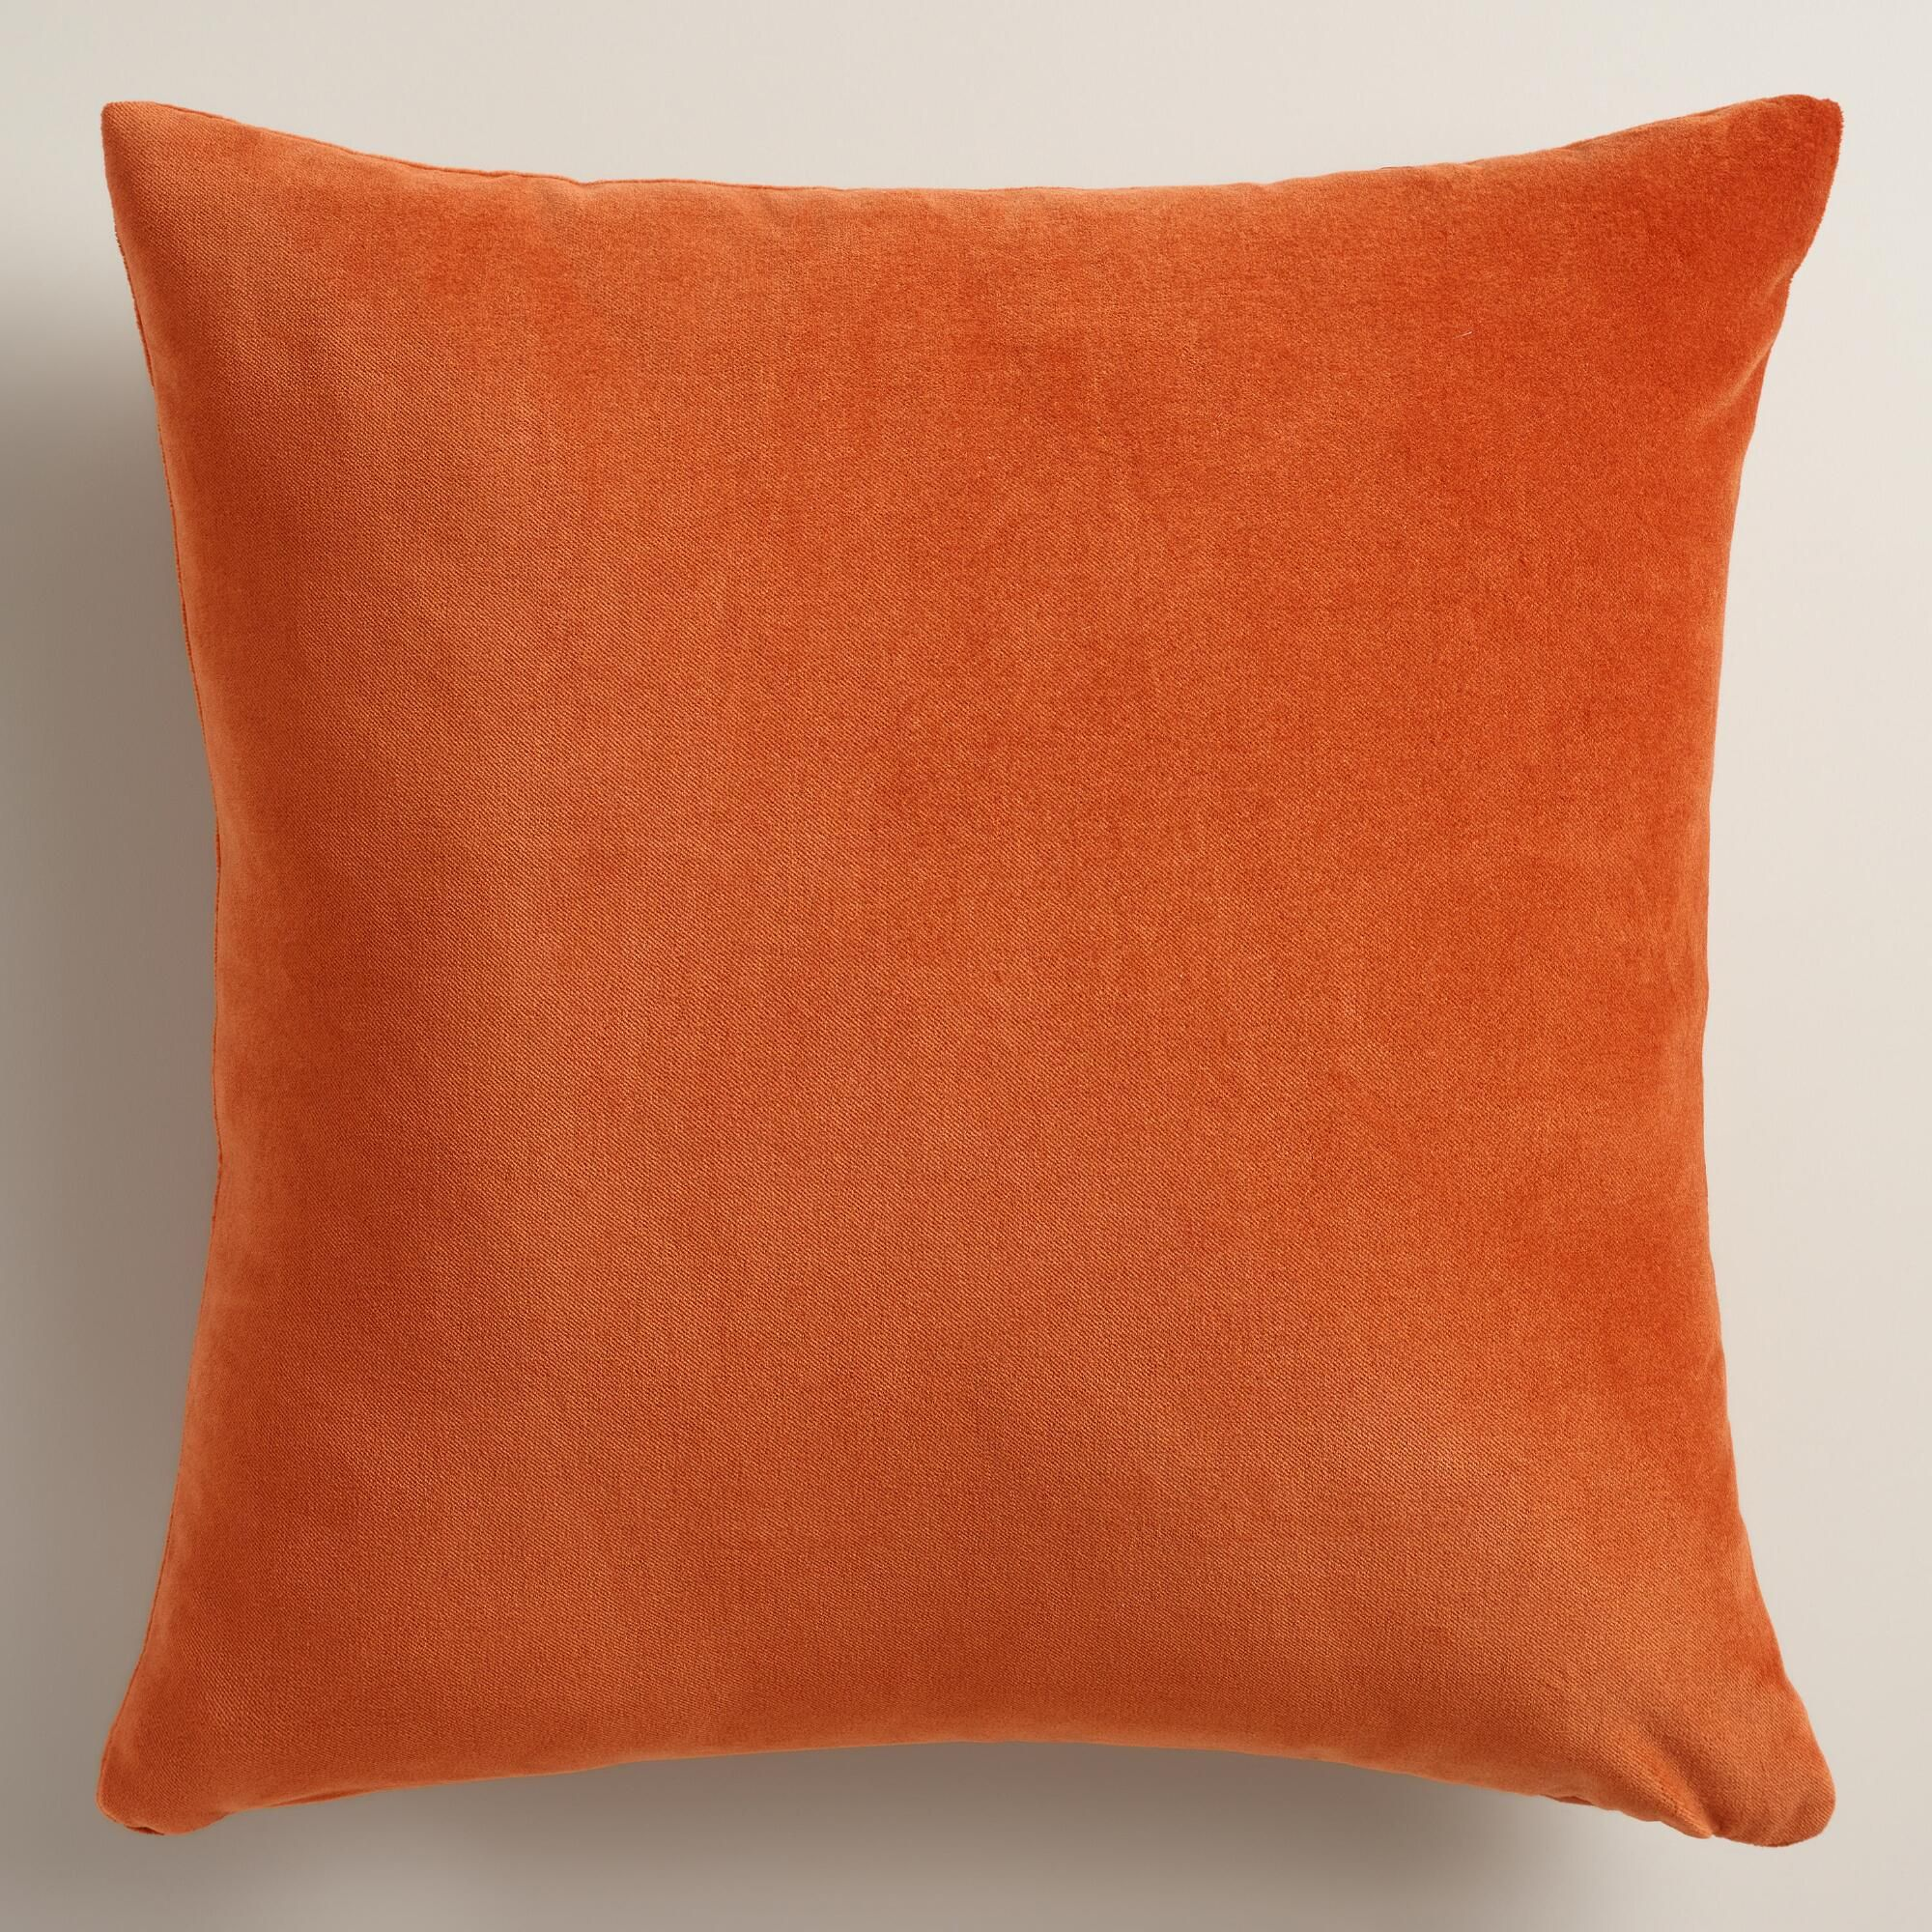 cozy pillow couch with design room sofa orange throw decorative living pretty pillows for